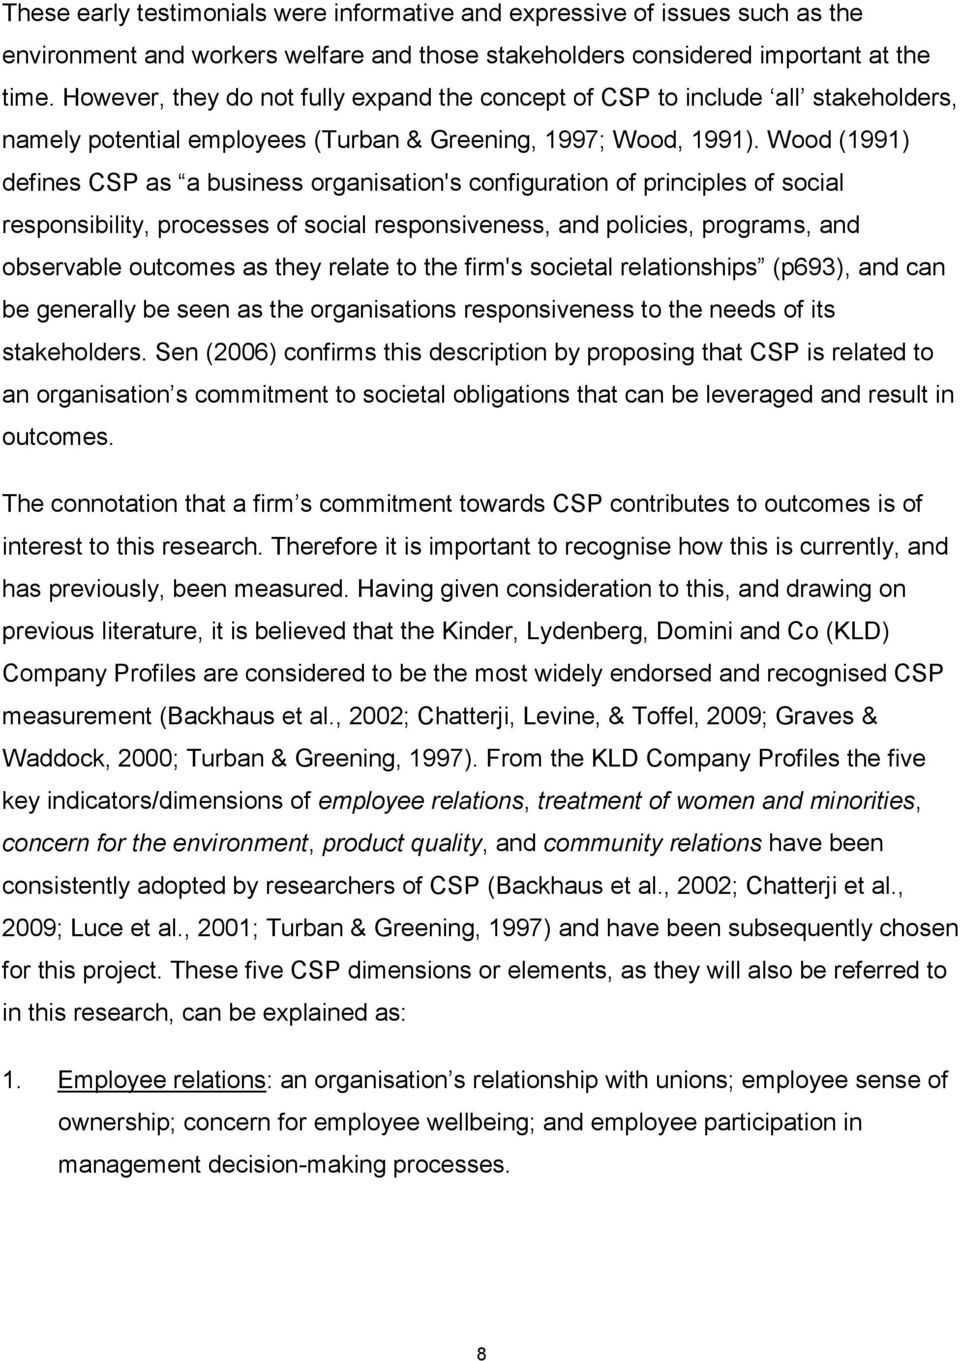 Wood (1991) defines CSP as a business organisation's configuration of principles of social responsibility, processes of social responsiveness, and policies, programs, and observable outcomes as they